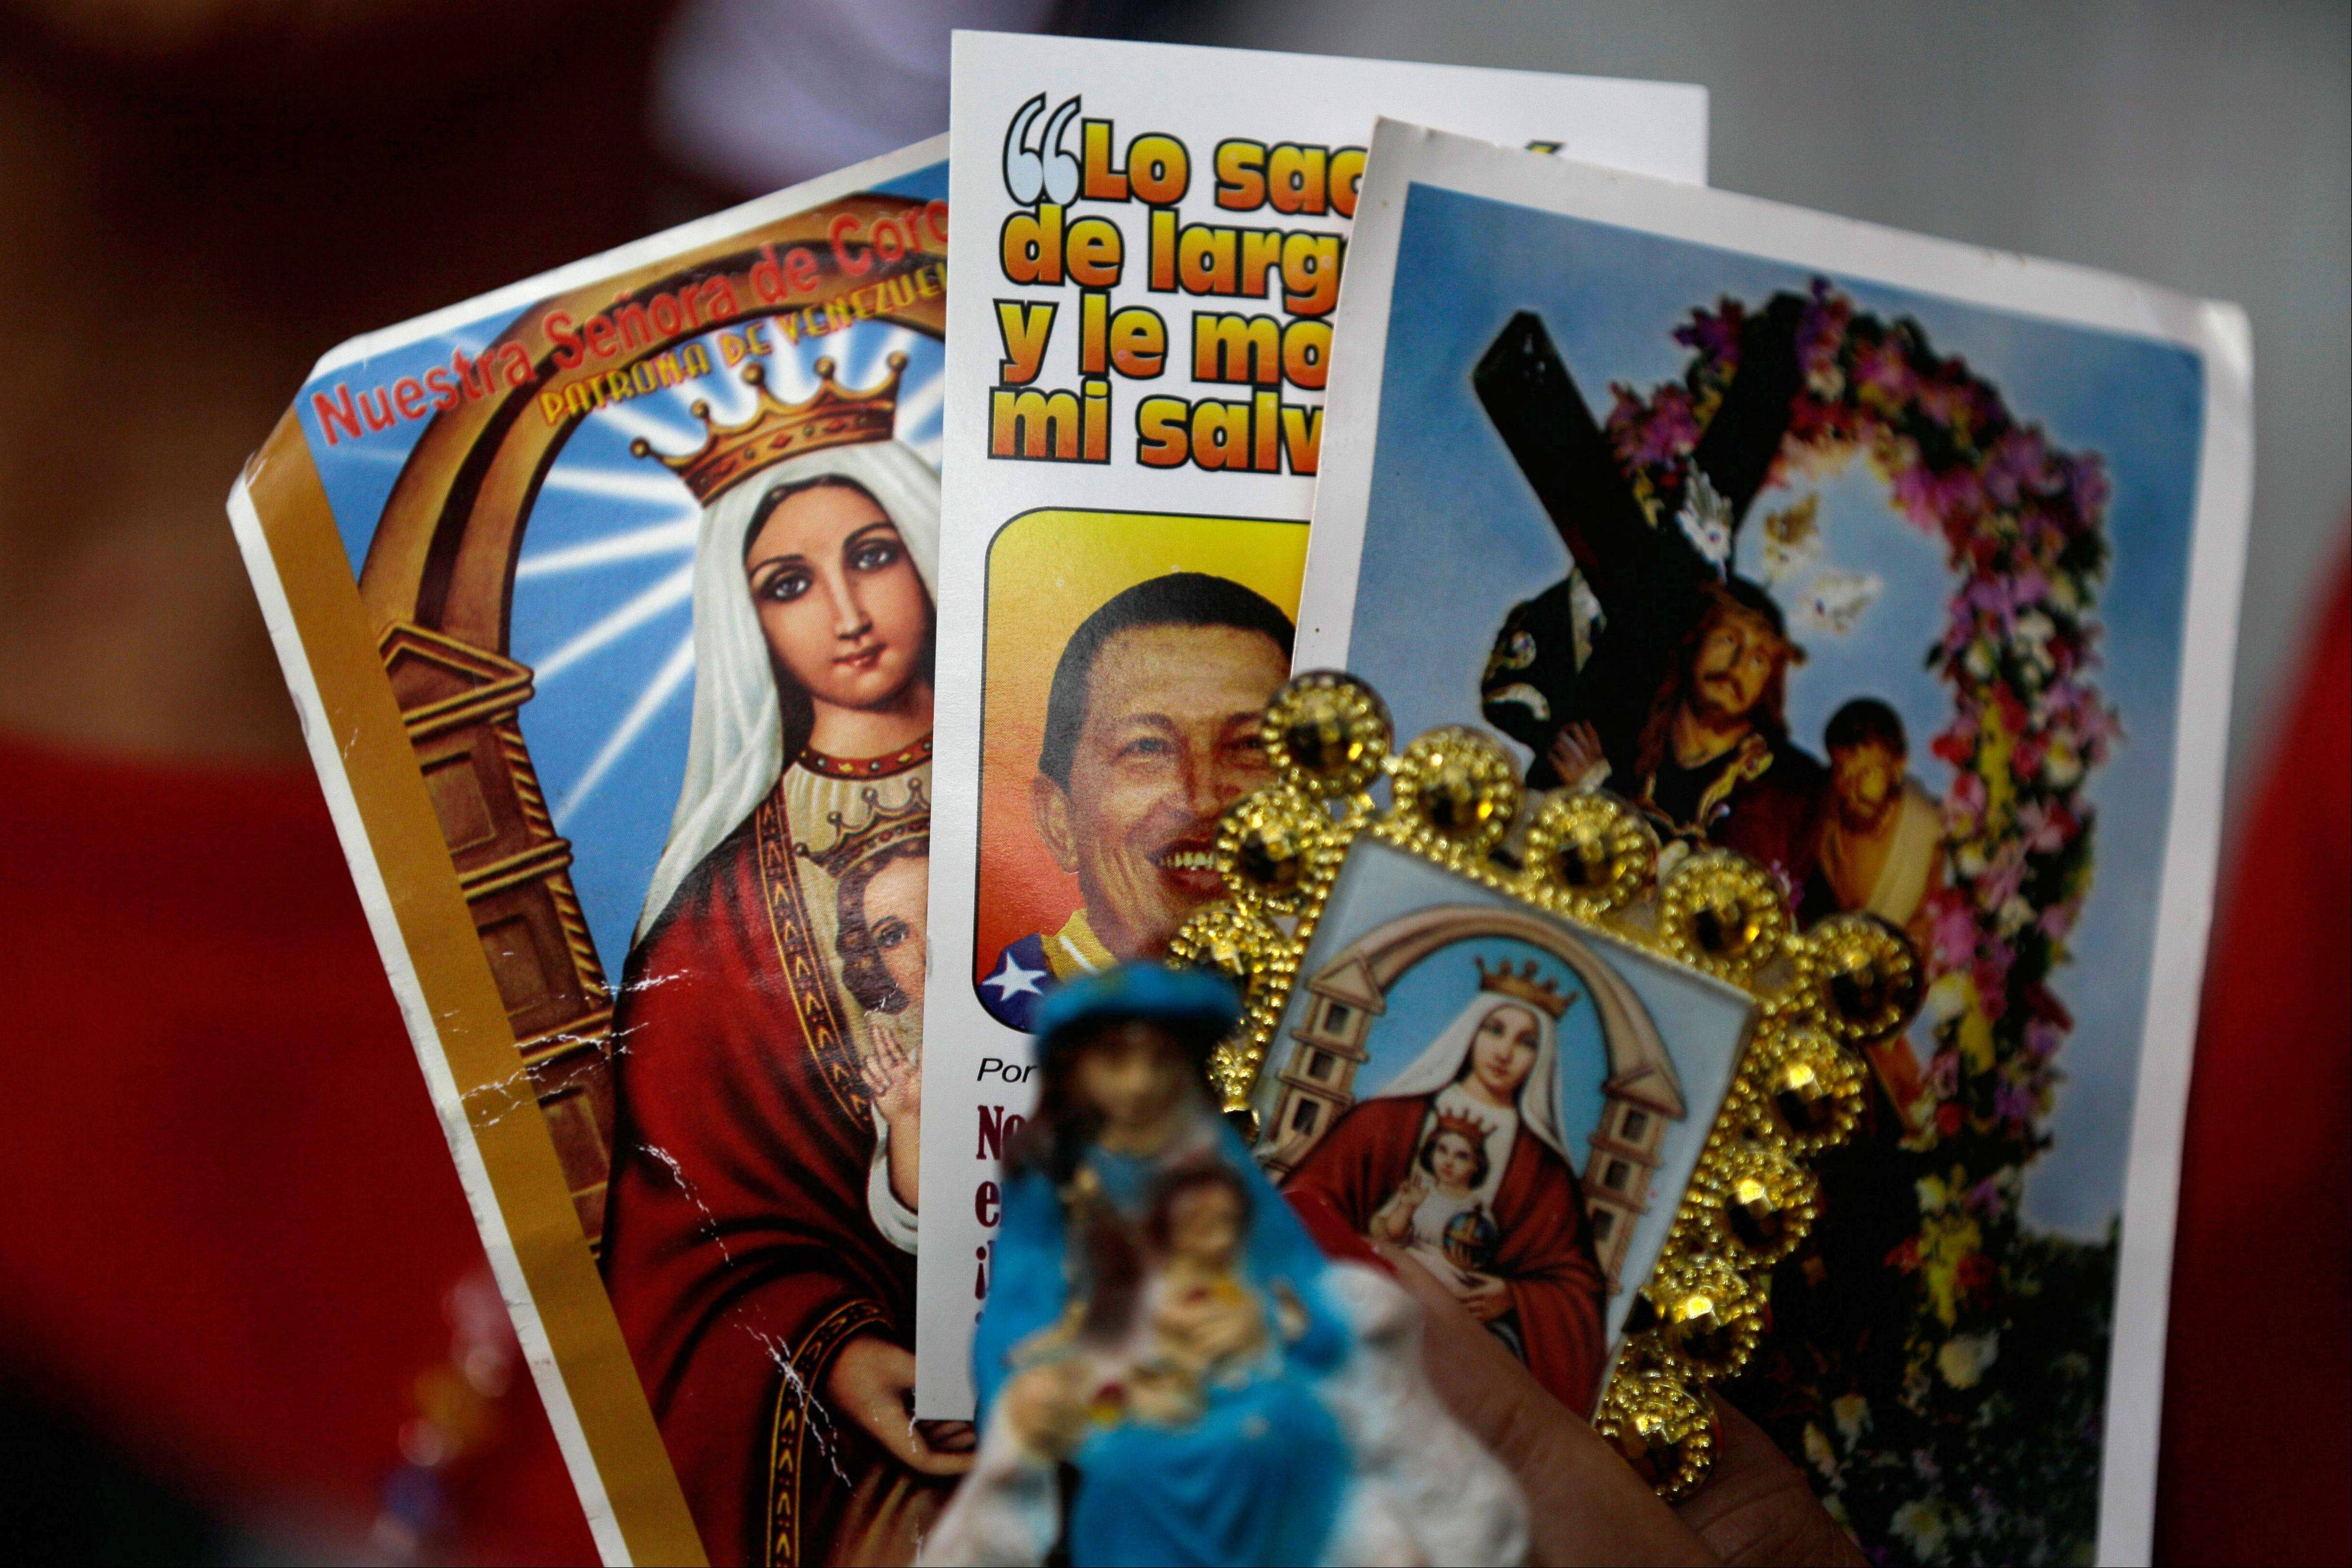 A person holds up an image of Venezuela's President Hugo Chavez among religious images during a demonstration in support of him at the Simon Bolivar square in Caracas, Venezuela, Sunday.